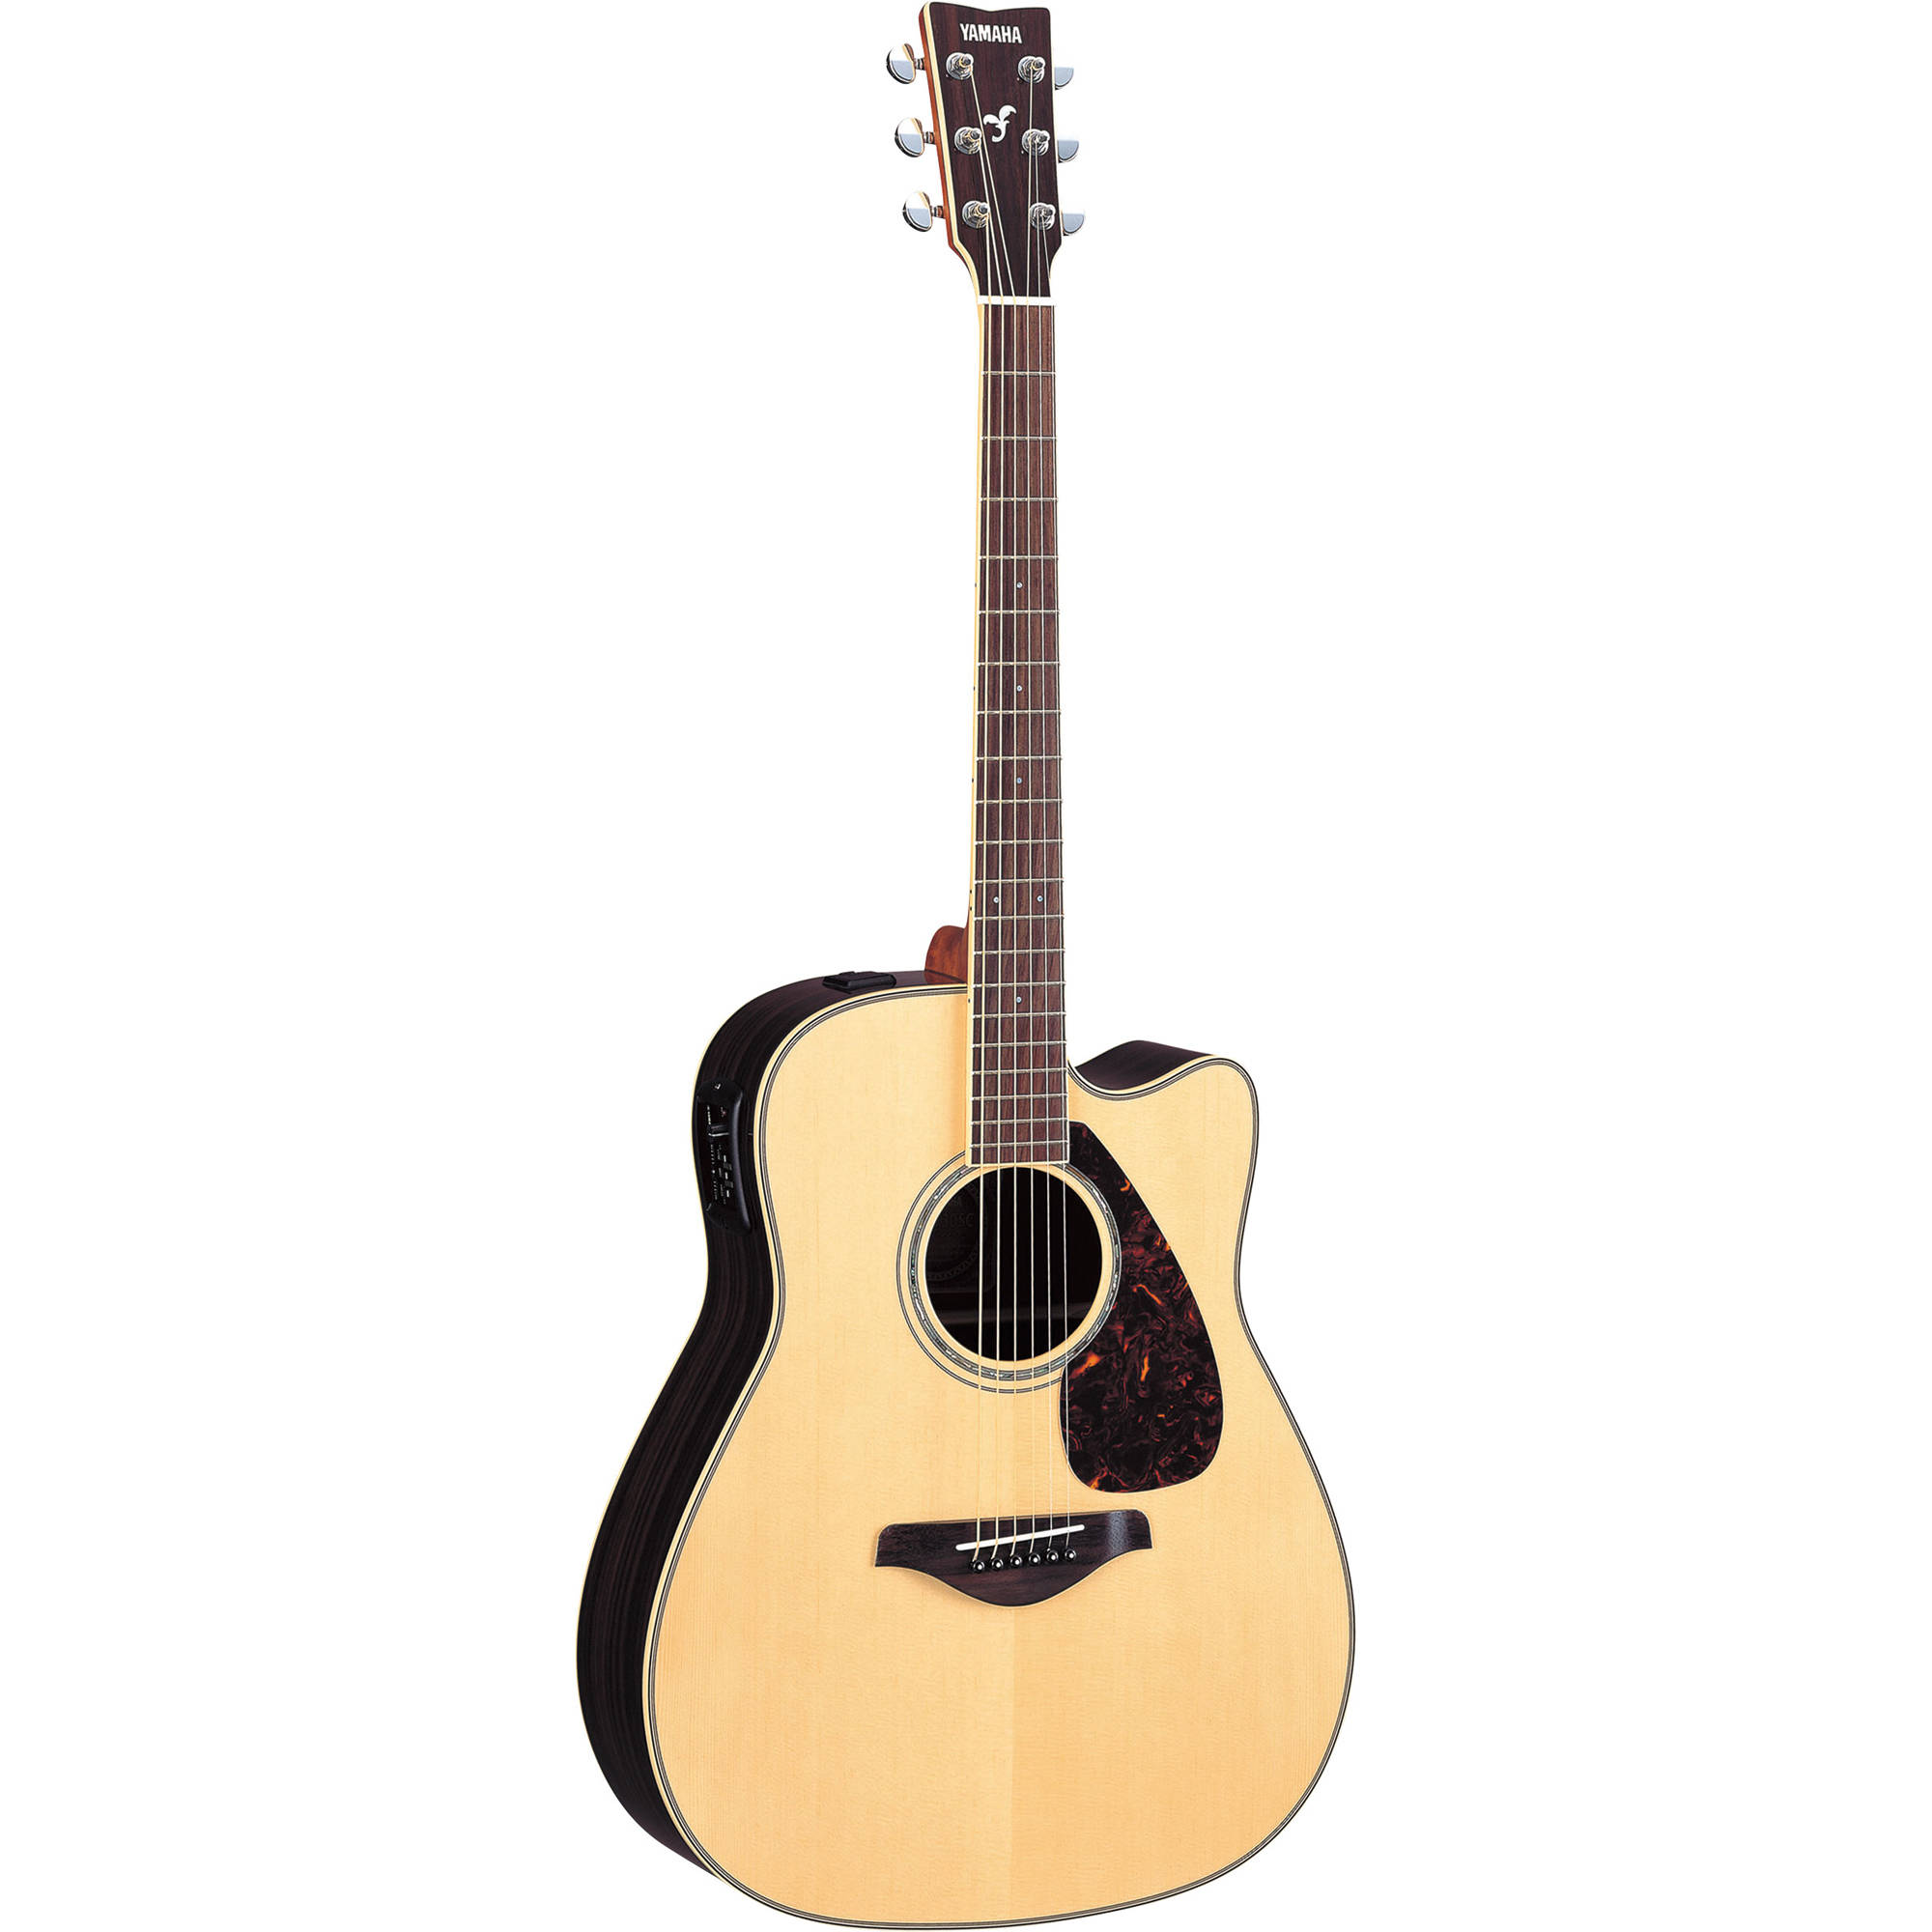 Yamaha Fgx730sc Acoustic Electric Solid Top Cutaway